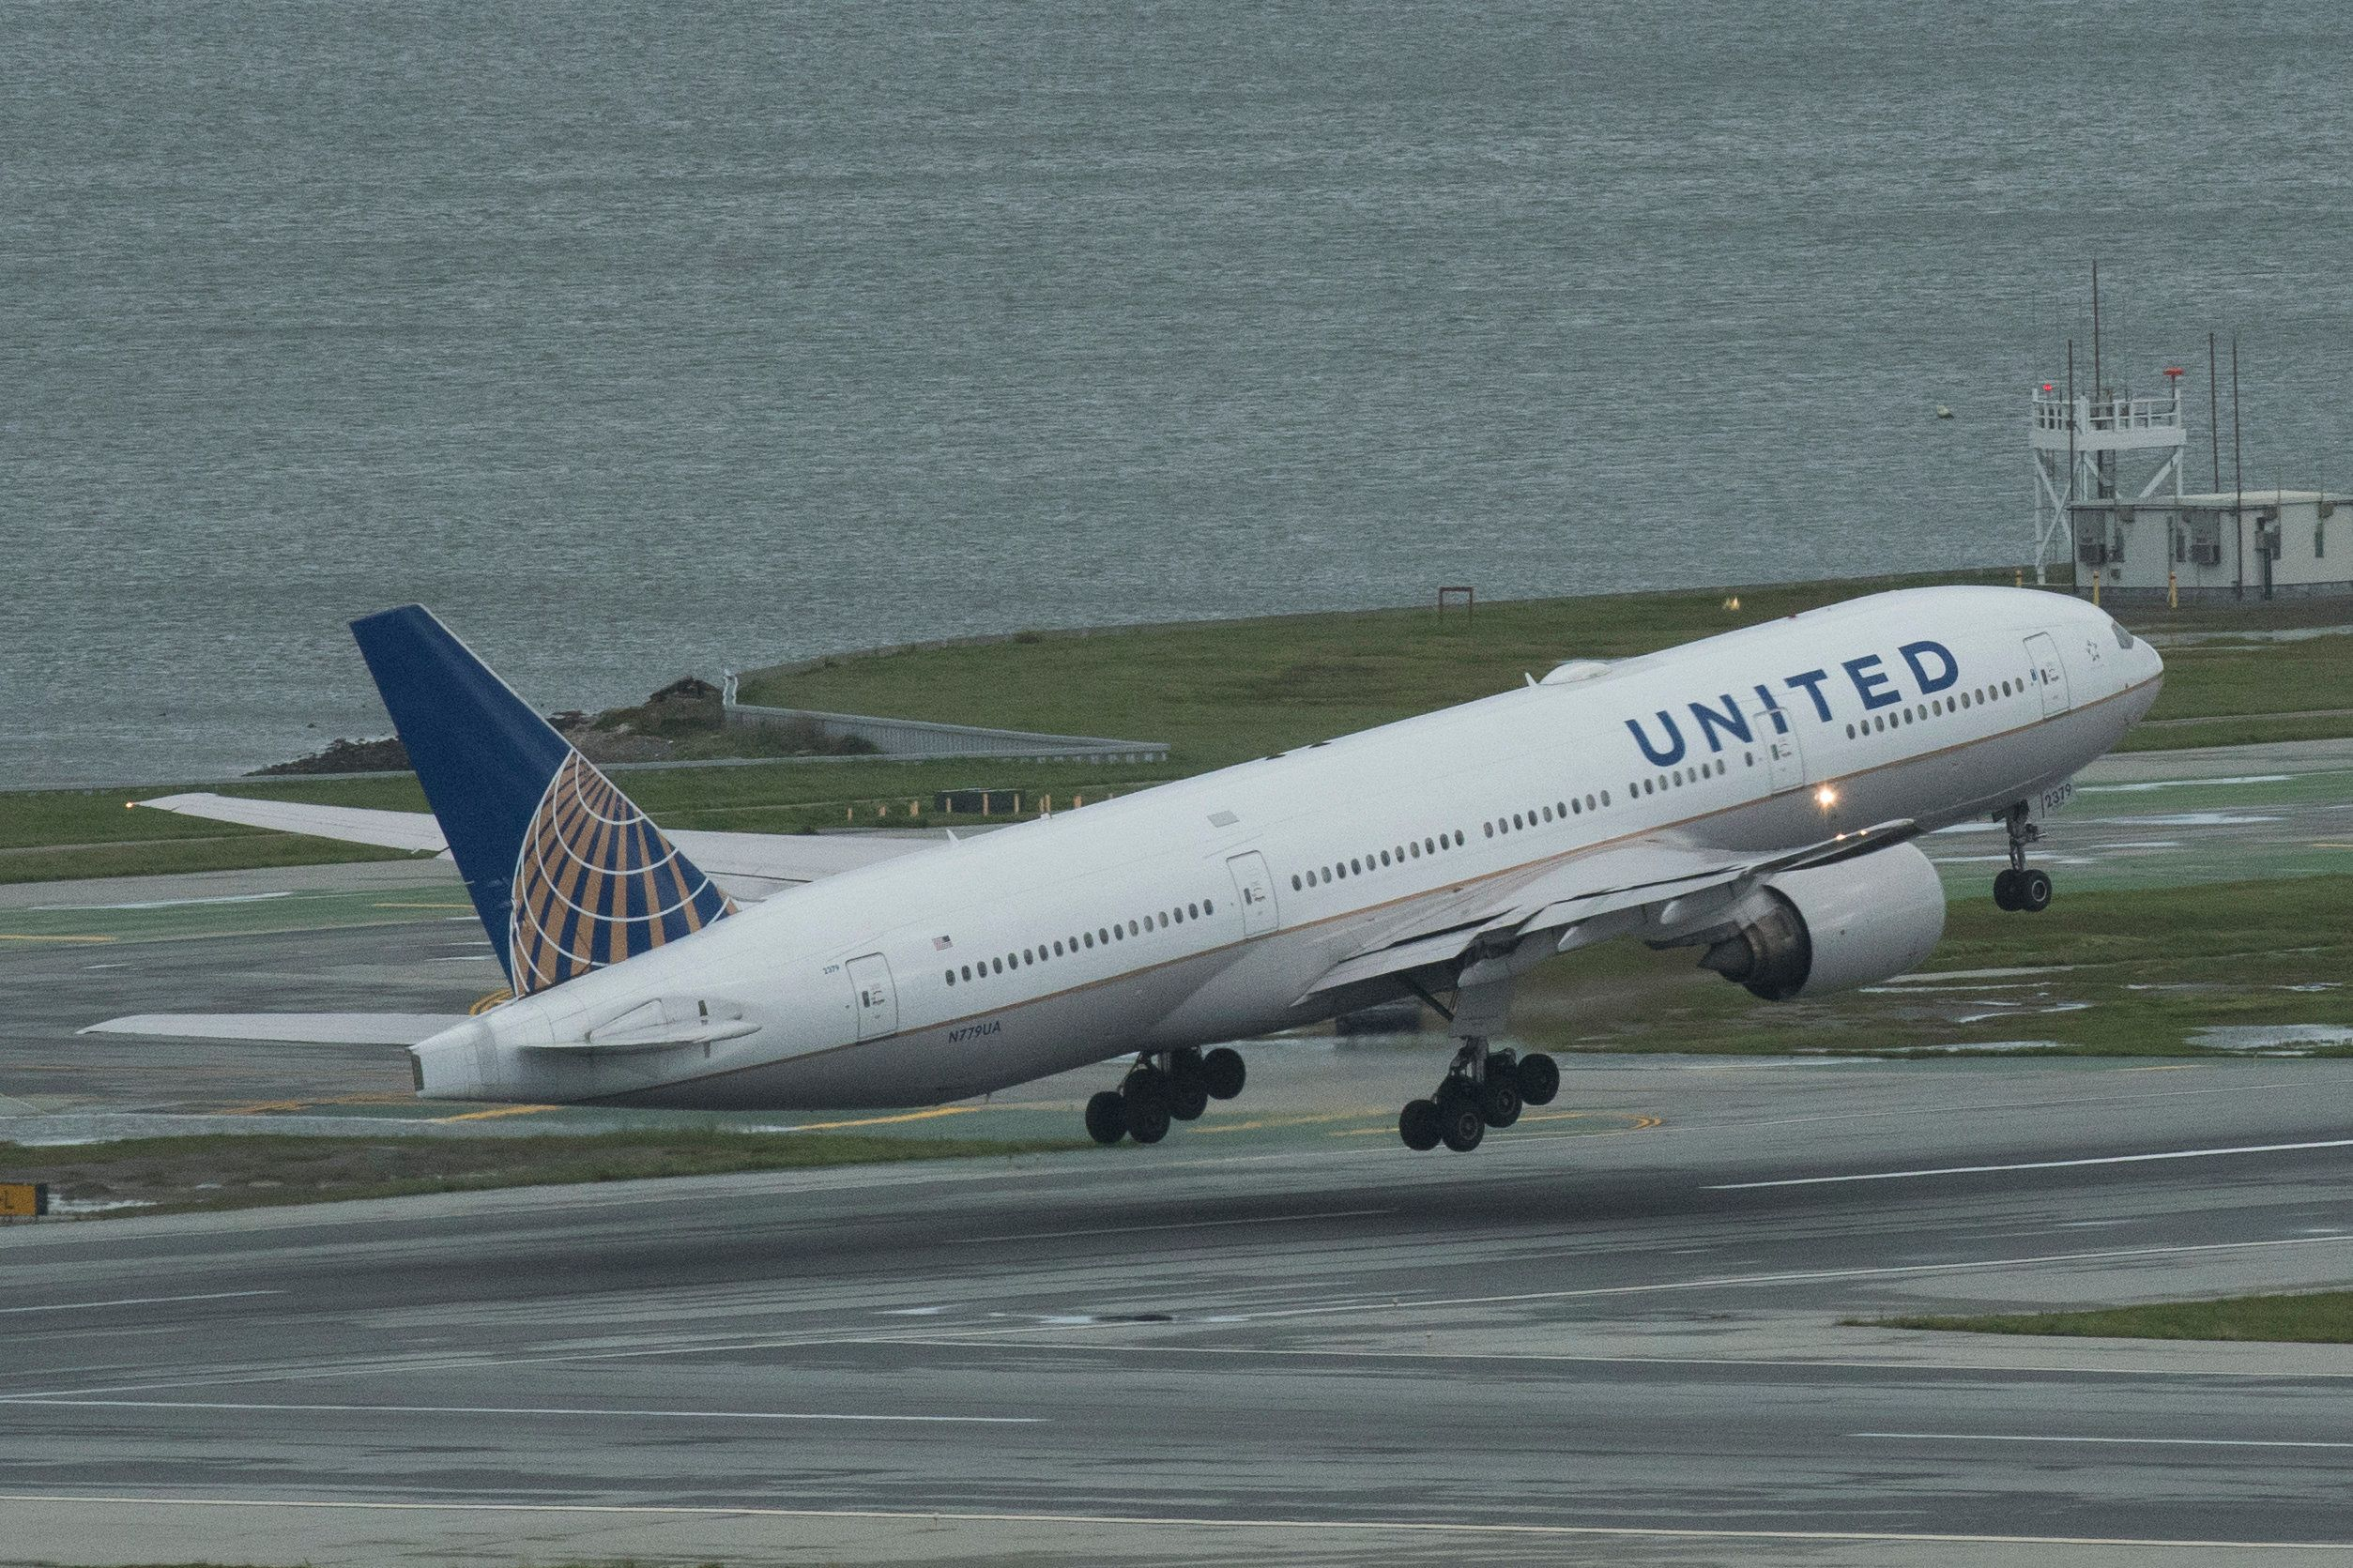 Airline Pilot Removed From Plane After Bizarre Intercom